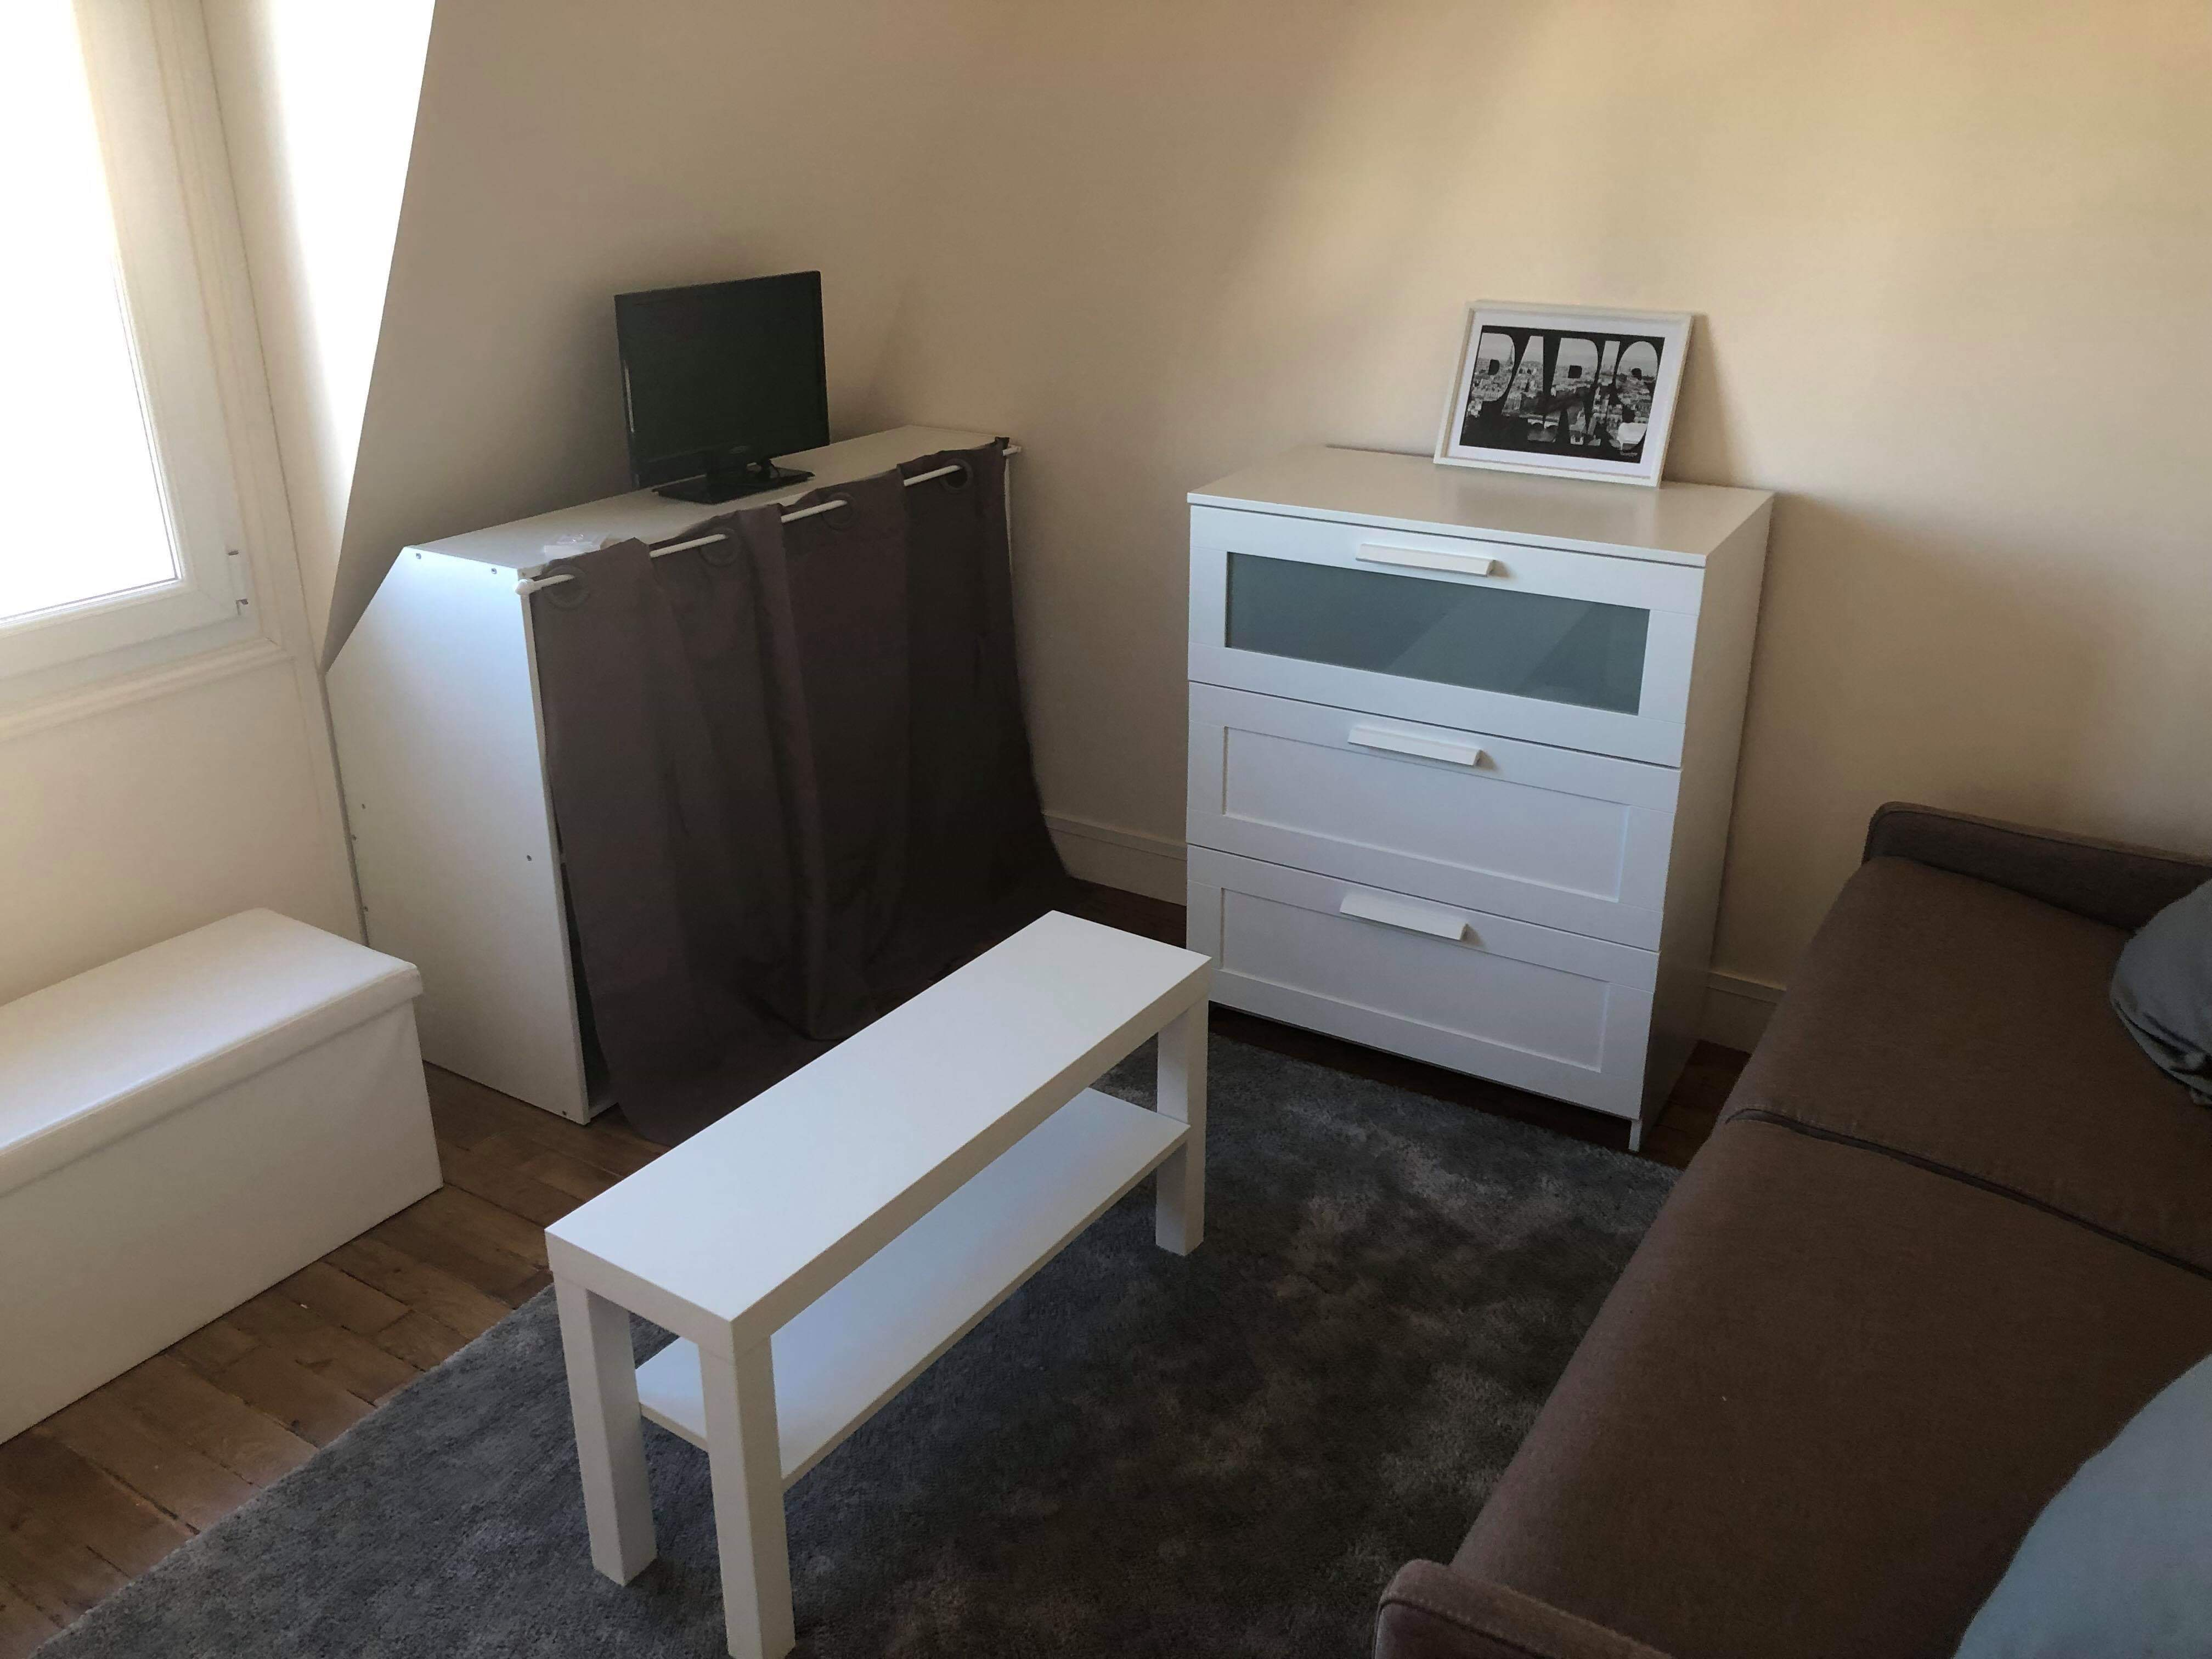 Flat in Asnières-sur-seine for   2 •   1 bathroom